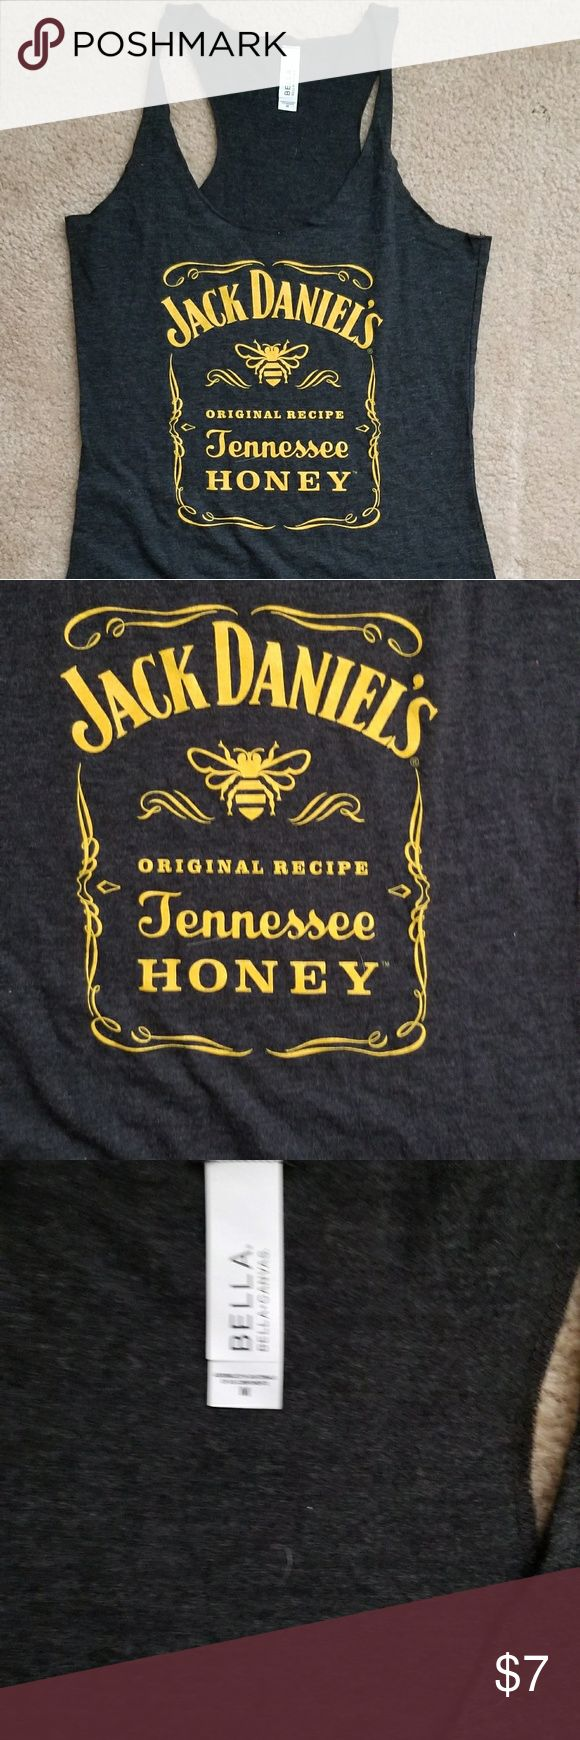 🚫SOLD🚫 Jack Daniels T-Shirt Jack Daniels T-Shirt Size Medium  Color - Gray with Gold Lettering  Gently Worn, No holes Tears or Stains. bella Tops Tees - Short Sleeve